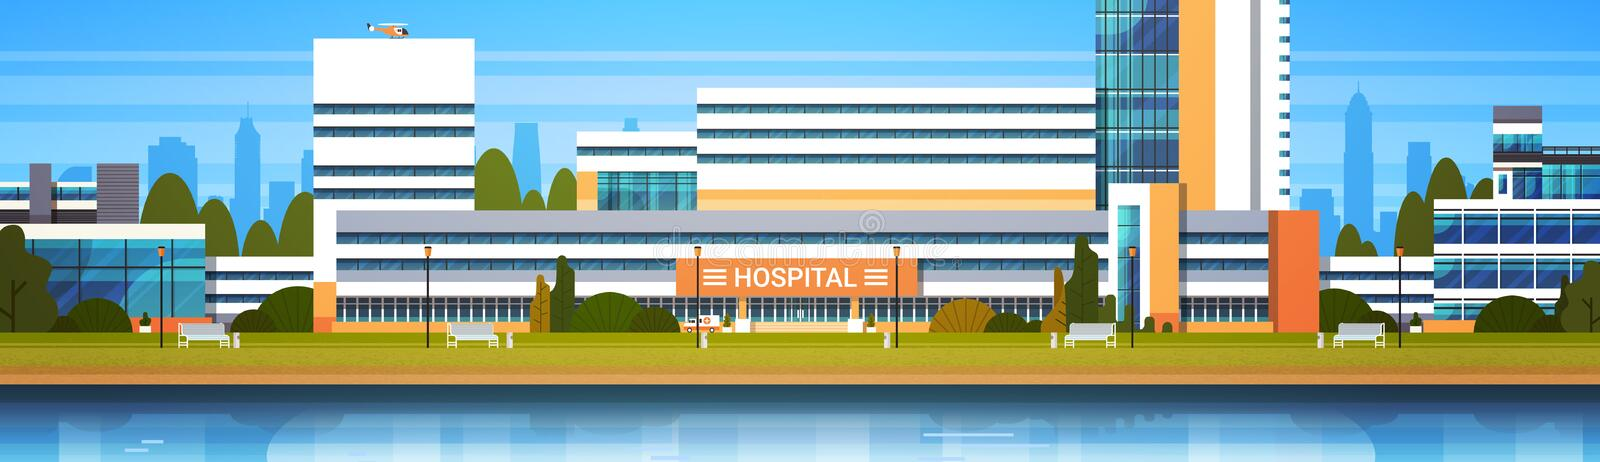 Hospital Building Exterior Modern Clinic View Horiozontal Banner. Flat Vector Illustration royalty free illustration